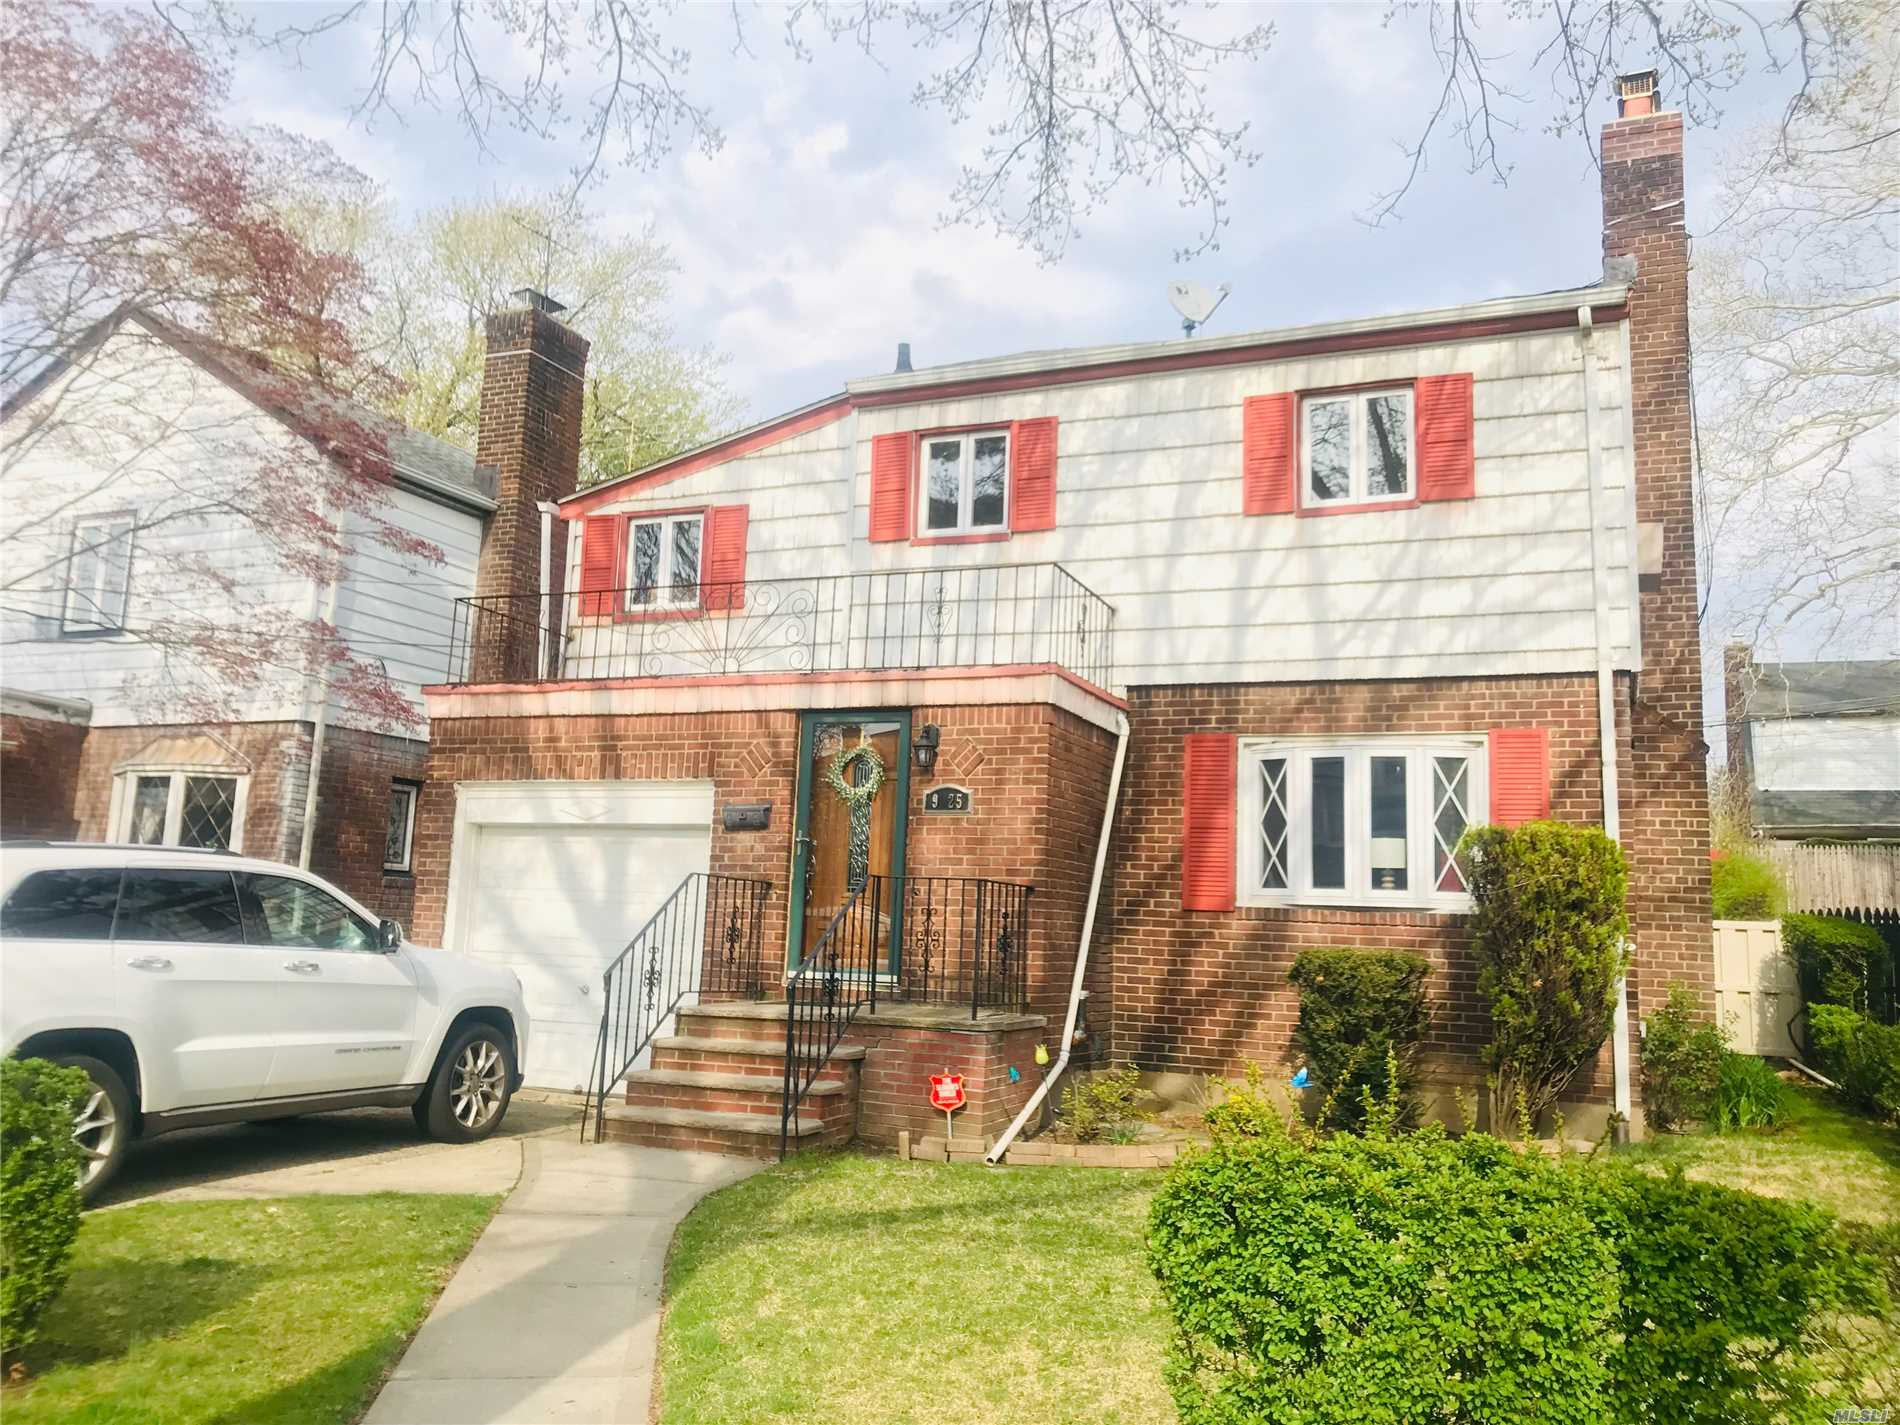 QUIET tree line block detach house with 4 bedrooms , big living room, formal dining room,  kitchen ,  half bathroom , exit to back yard , above ground pool for family summer entertainment , one car garage. close to transportation, walking distance to park